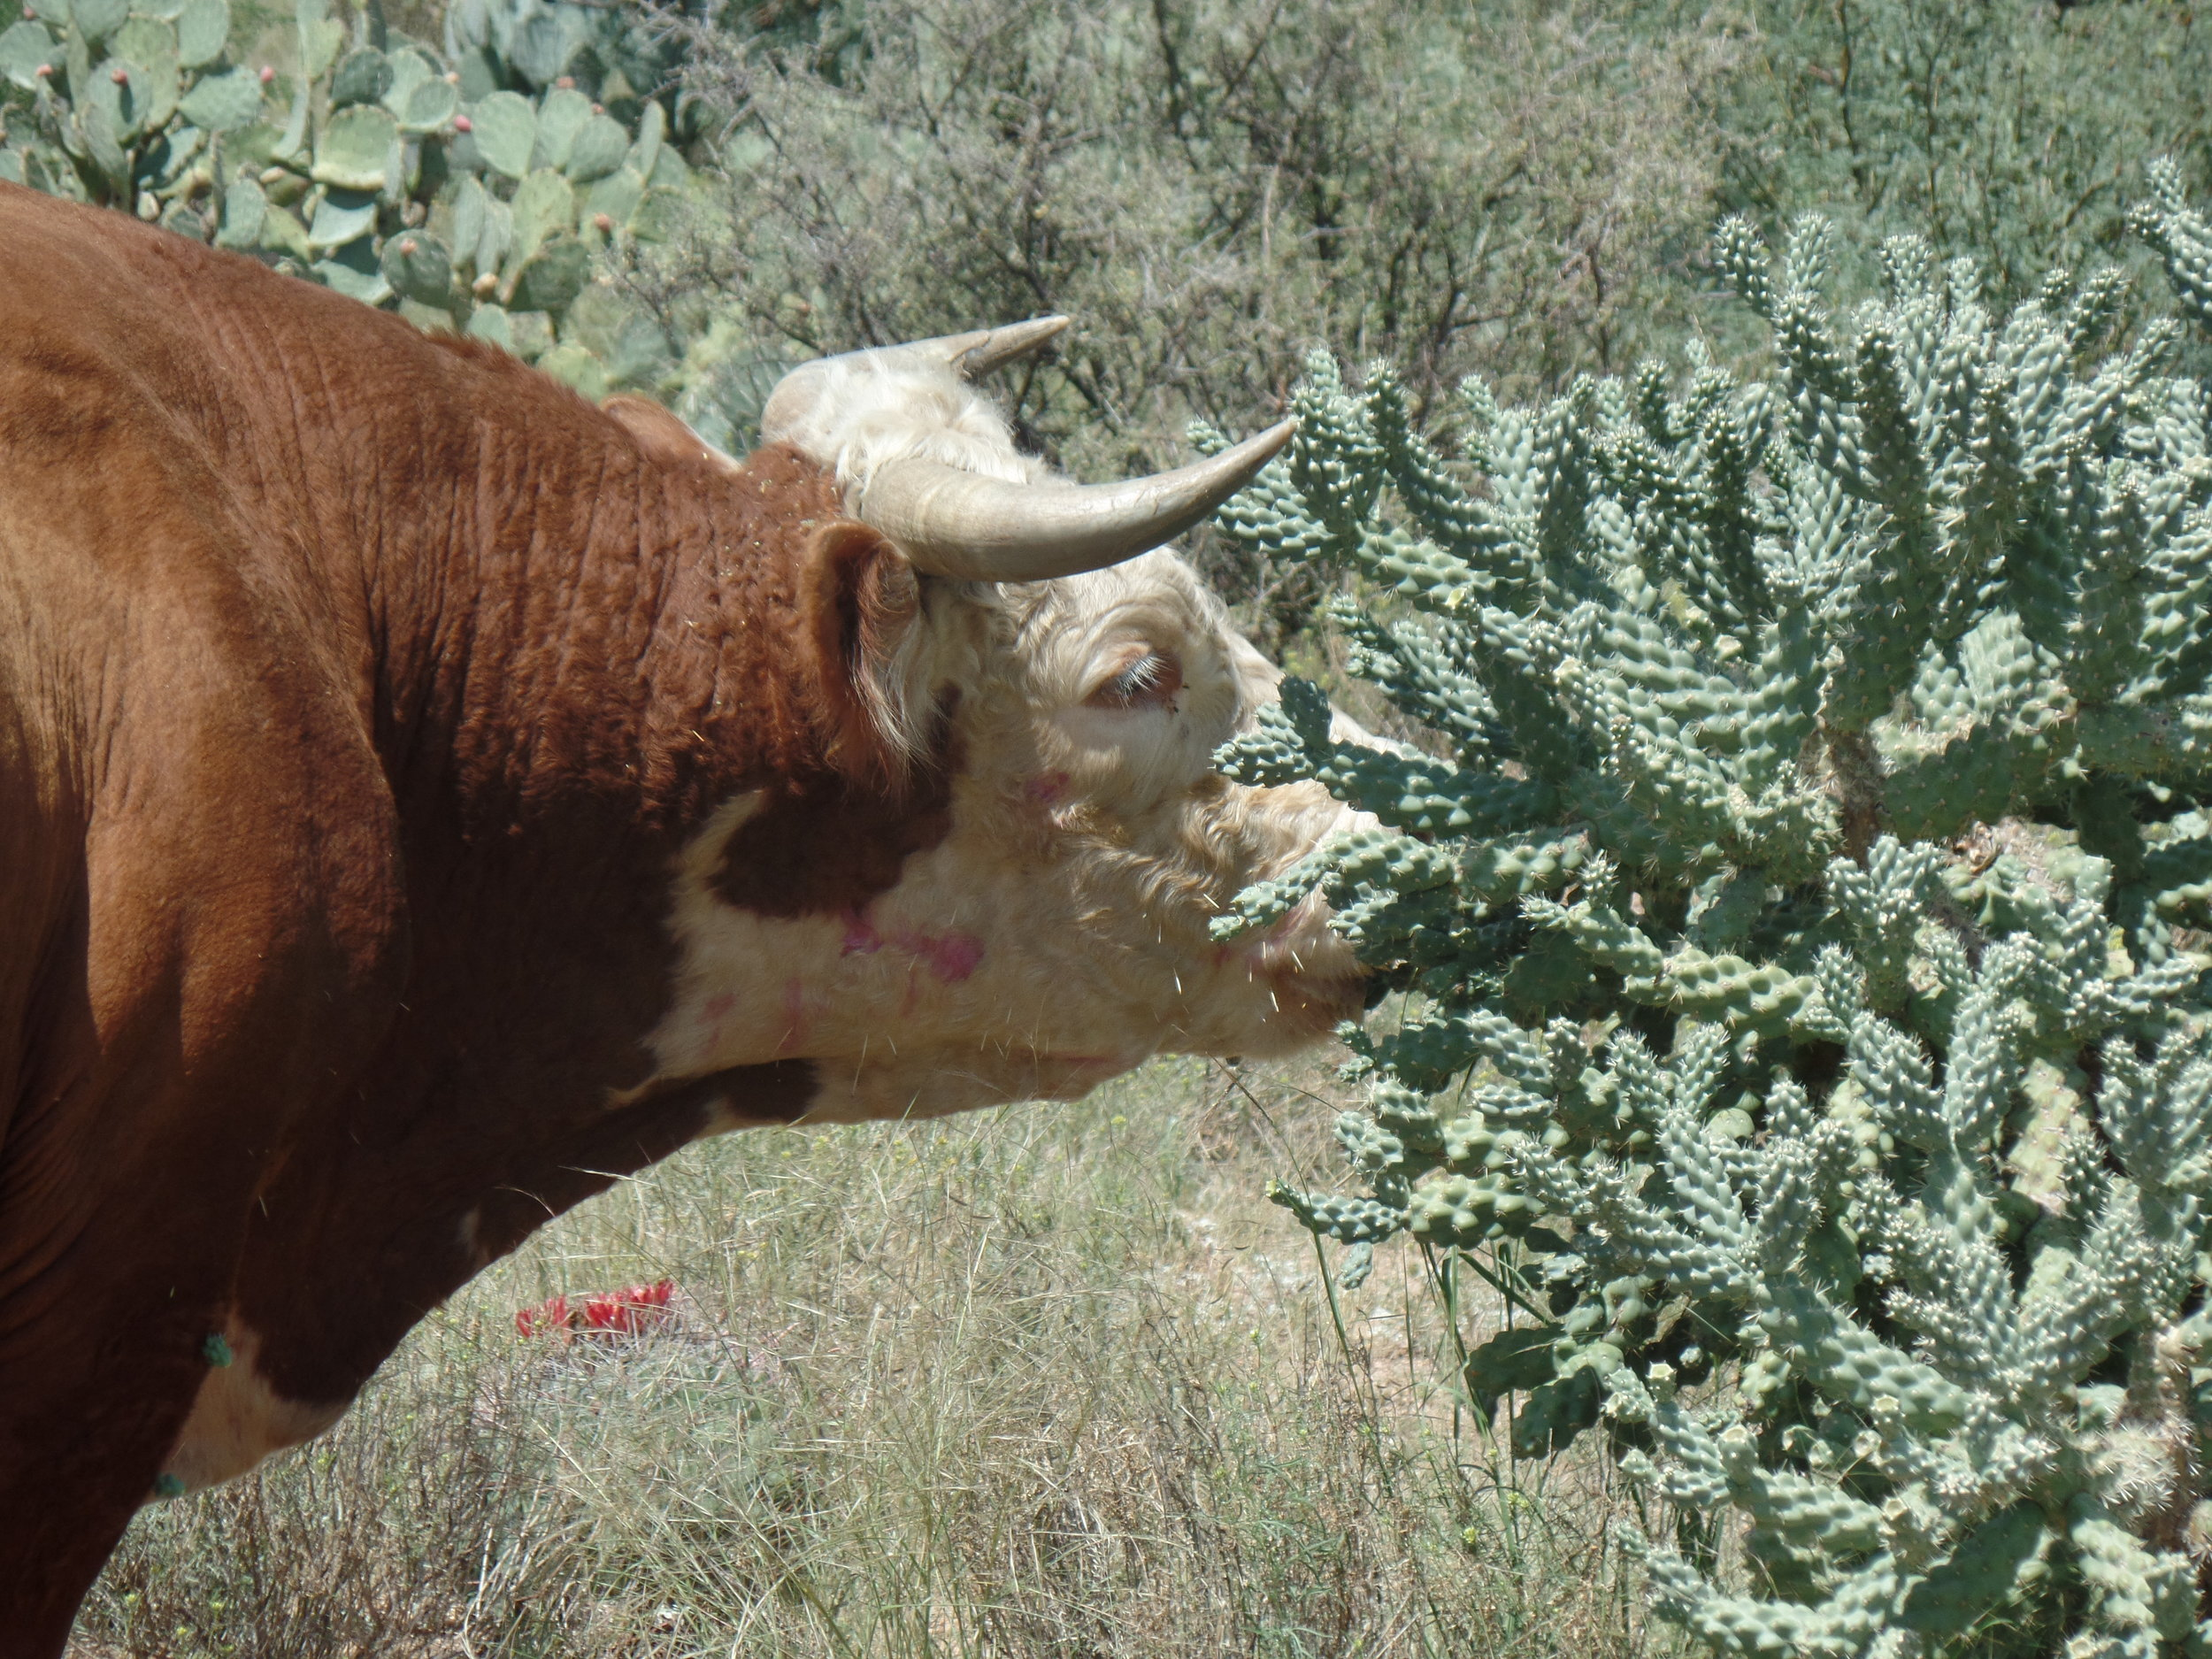 Cow eating cactus (with Spines) - Seen on my run - Catalina, Arizona